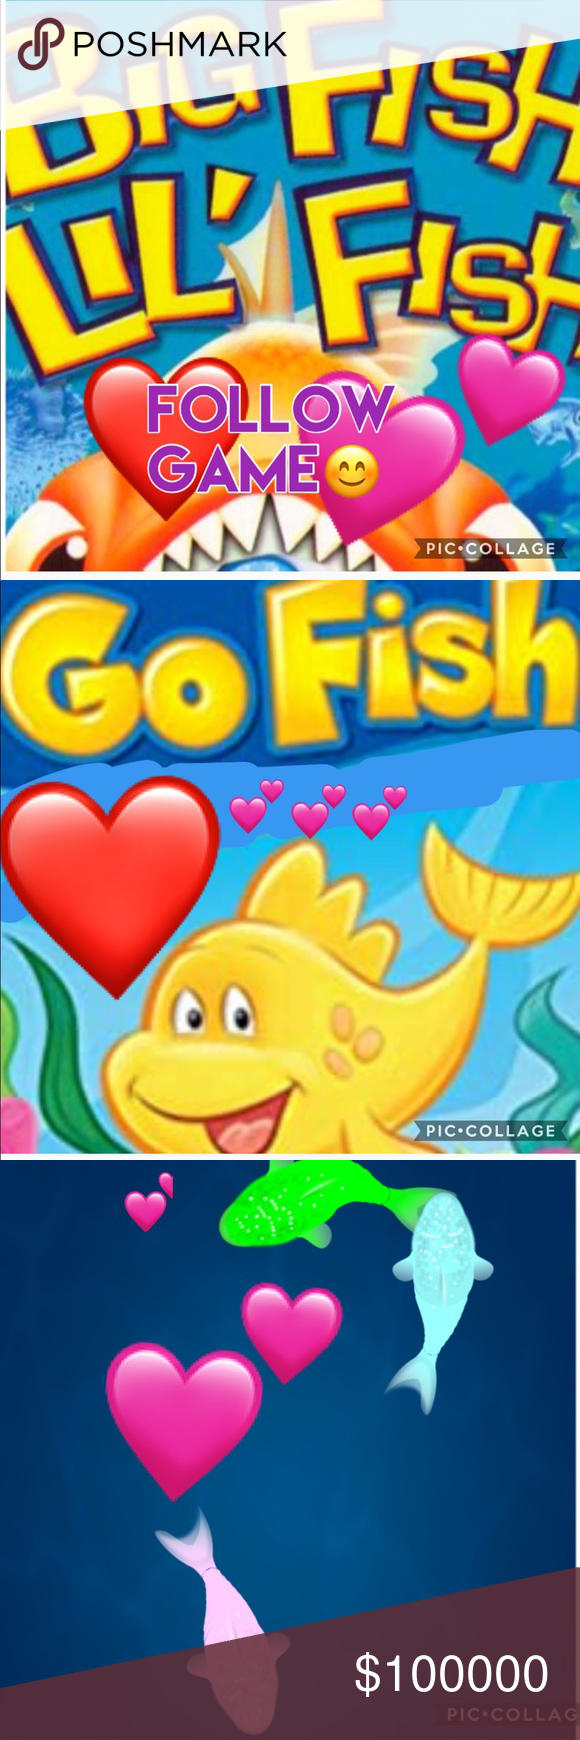 FOLLOW GAME Click LIKE2Follow Big Fish&Little Fish 🐳FOLLOW GAME TIME🐳 EVERYBODY CAN PLAY!!'                                                                                                 There are just so many Beautiful 🐠 Fish  (Pffs)here in Poshland!!  Some Little,Some Big...All Together WE are a Big Team of LOVE!!!❤️ Let's keep swimming strong together& making a BigFun SPLASH in all that we do! ⭐️All ya do is... Follow me.  Follow everybody that liked this listing.  Like this listing.  Tag